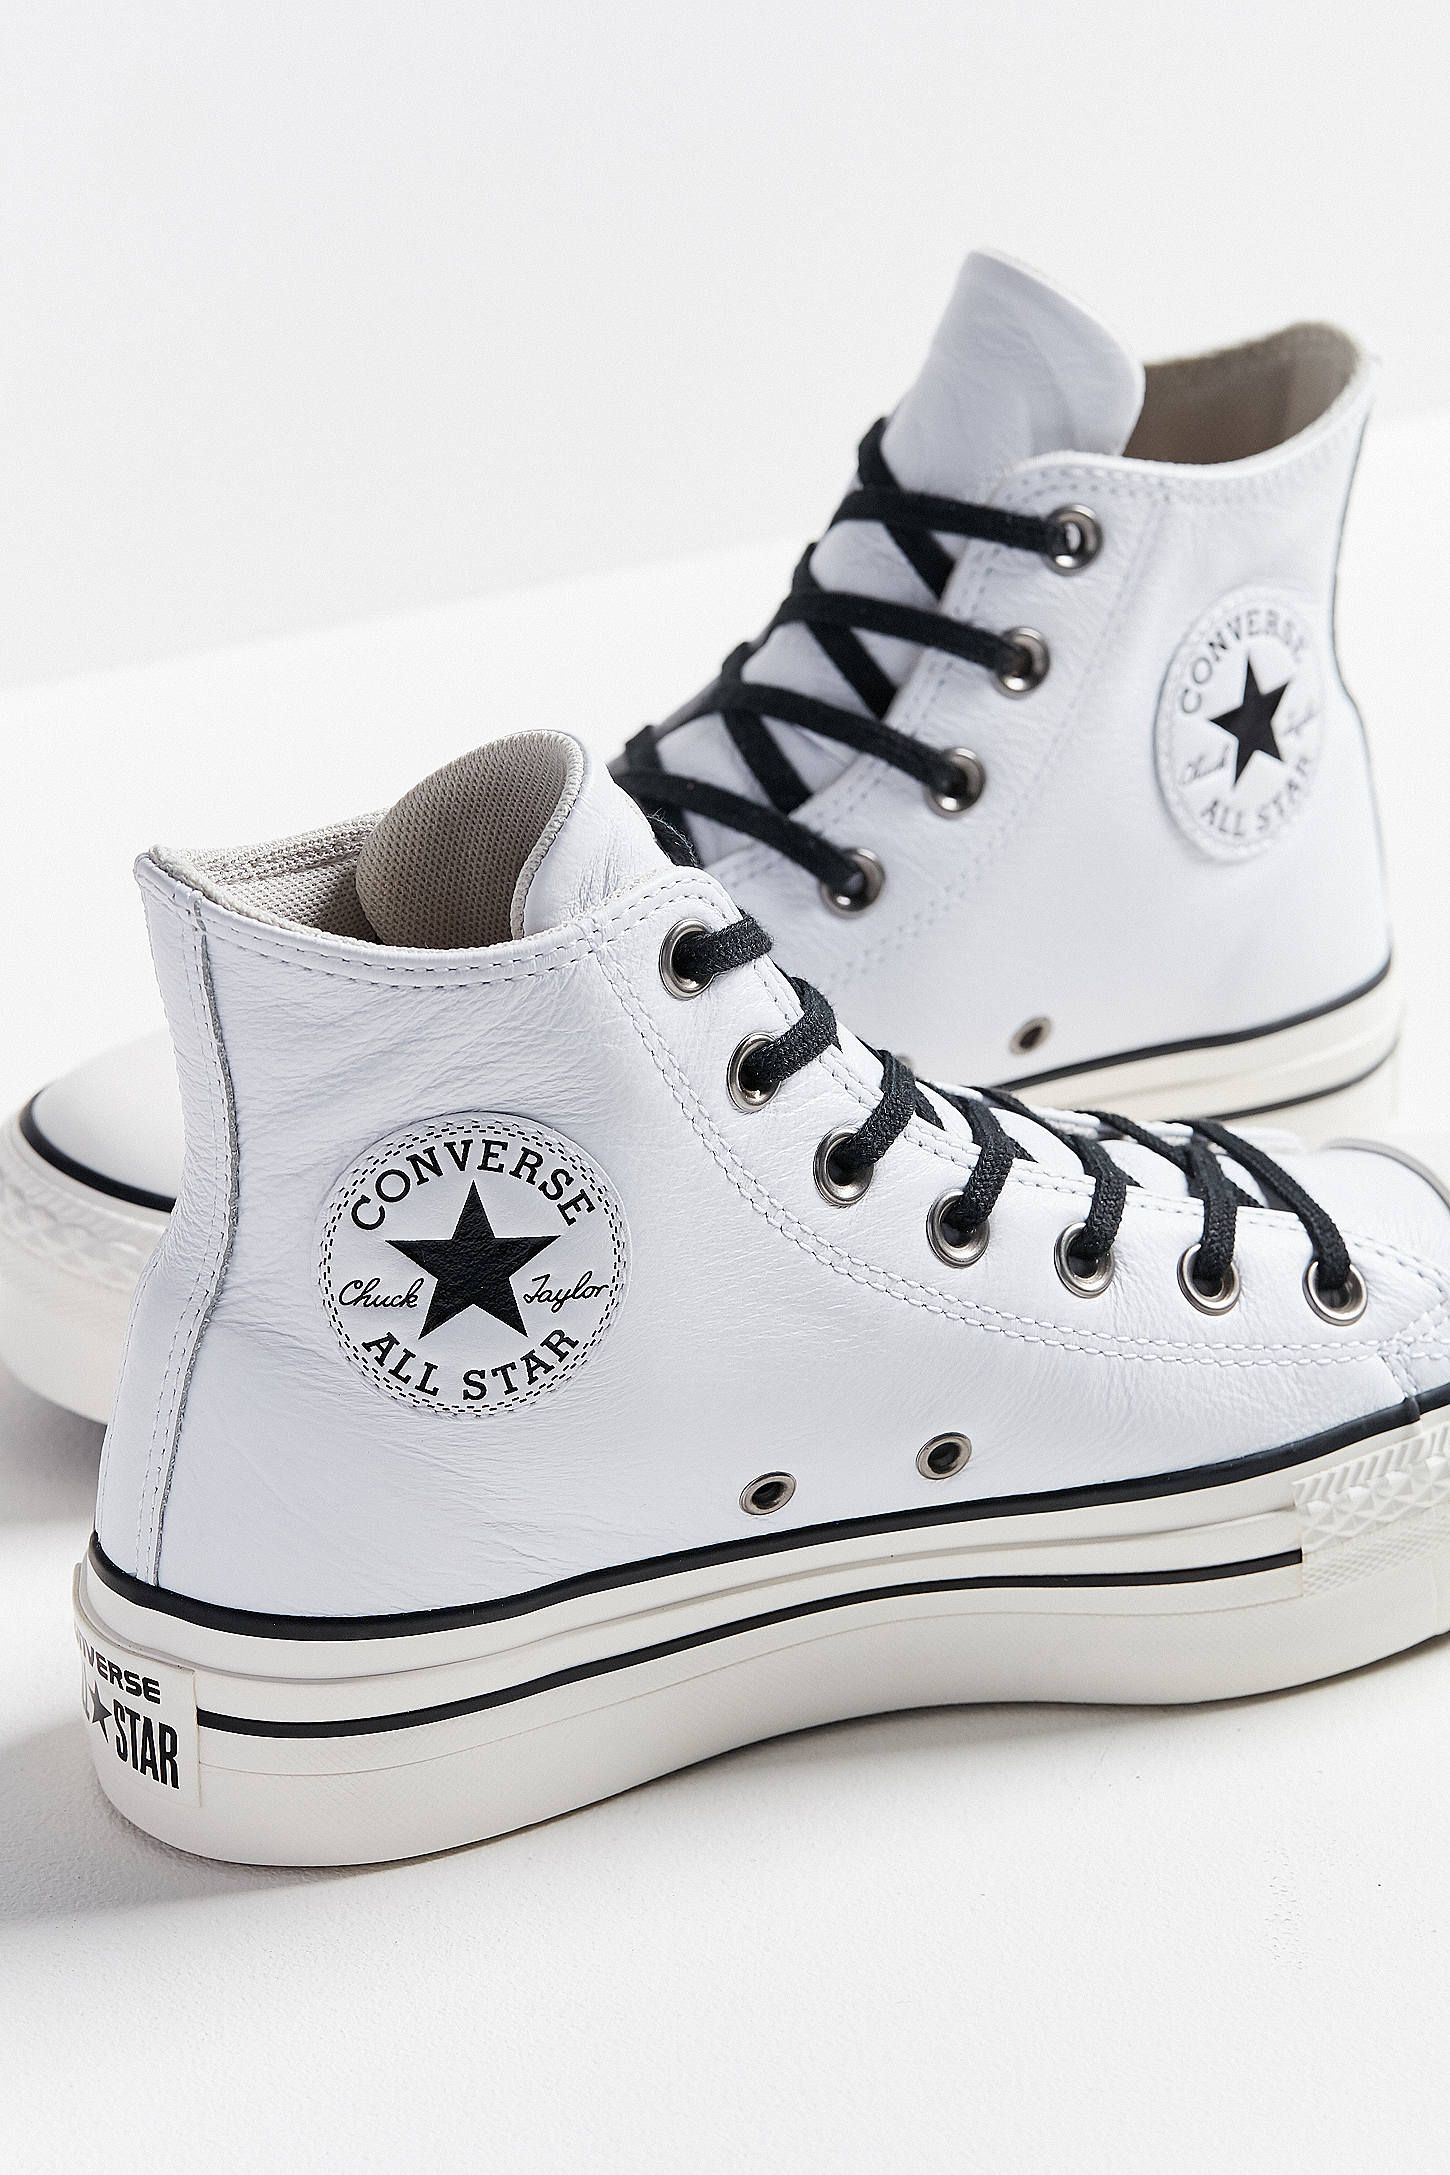 d733bb012416dd Slide View  5  Converse Chuck Taylor All Star Platform High Top Sneaker